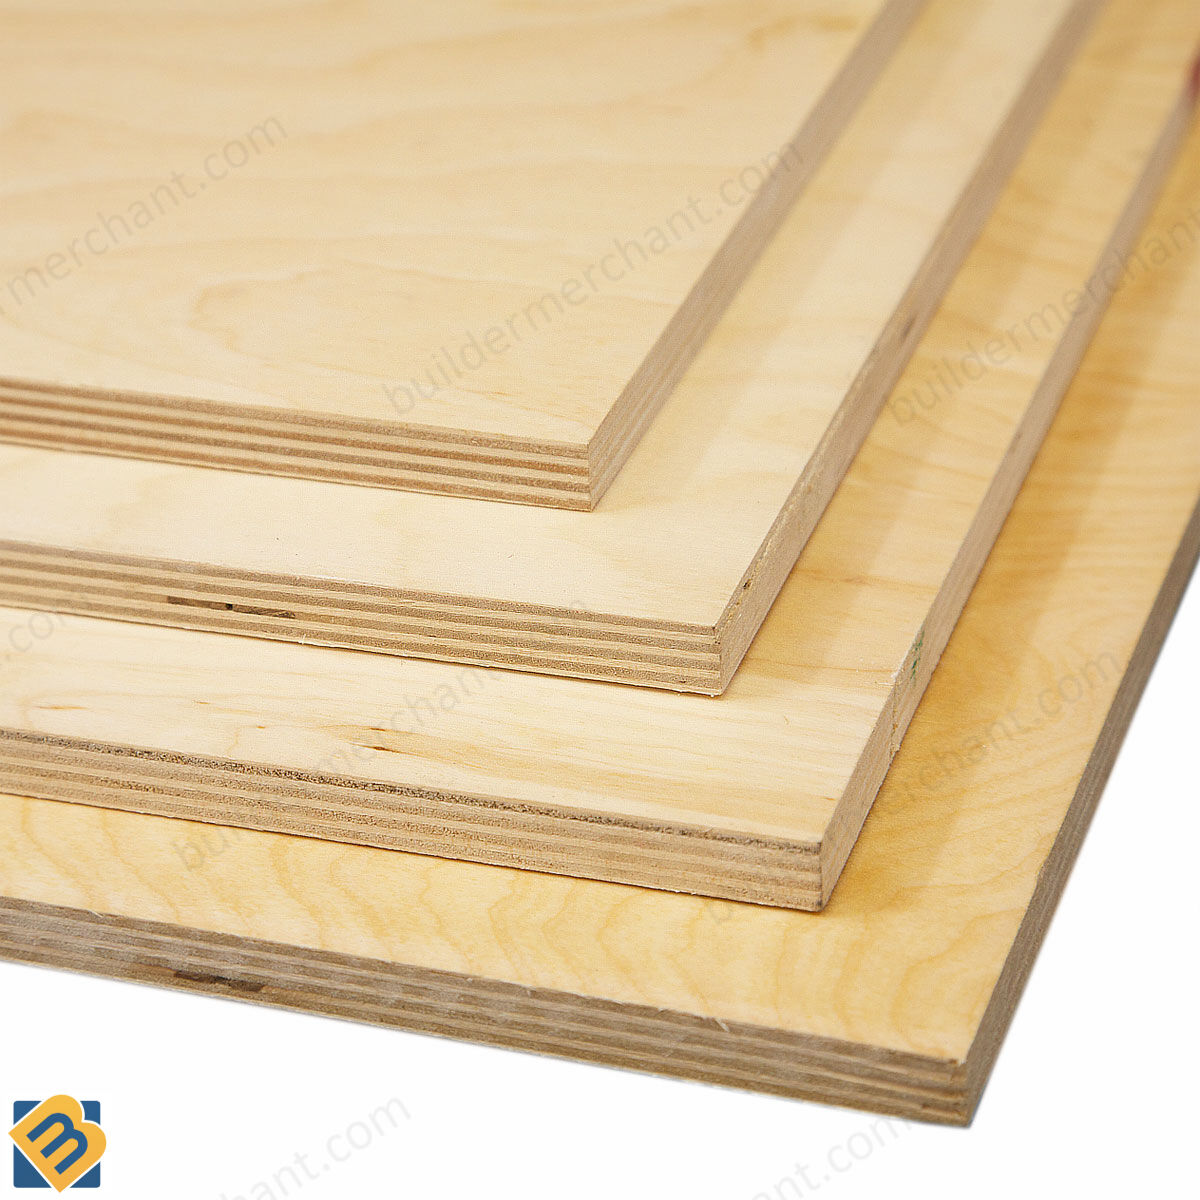 Birch plywood wbp sheets baltic ply